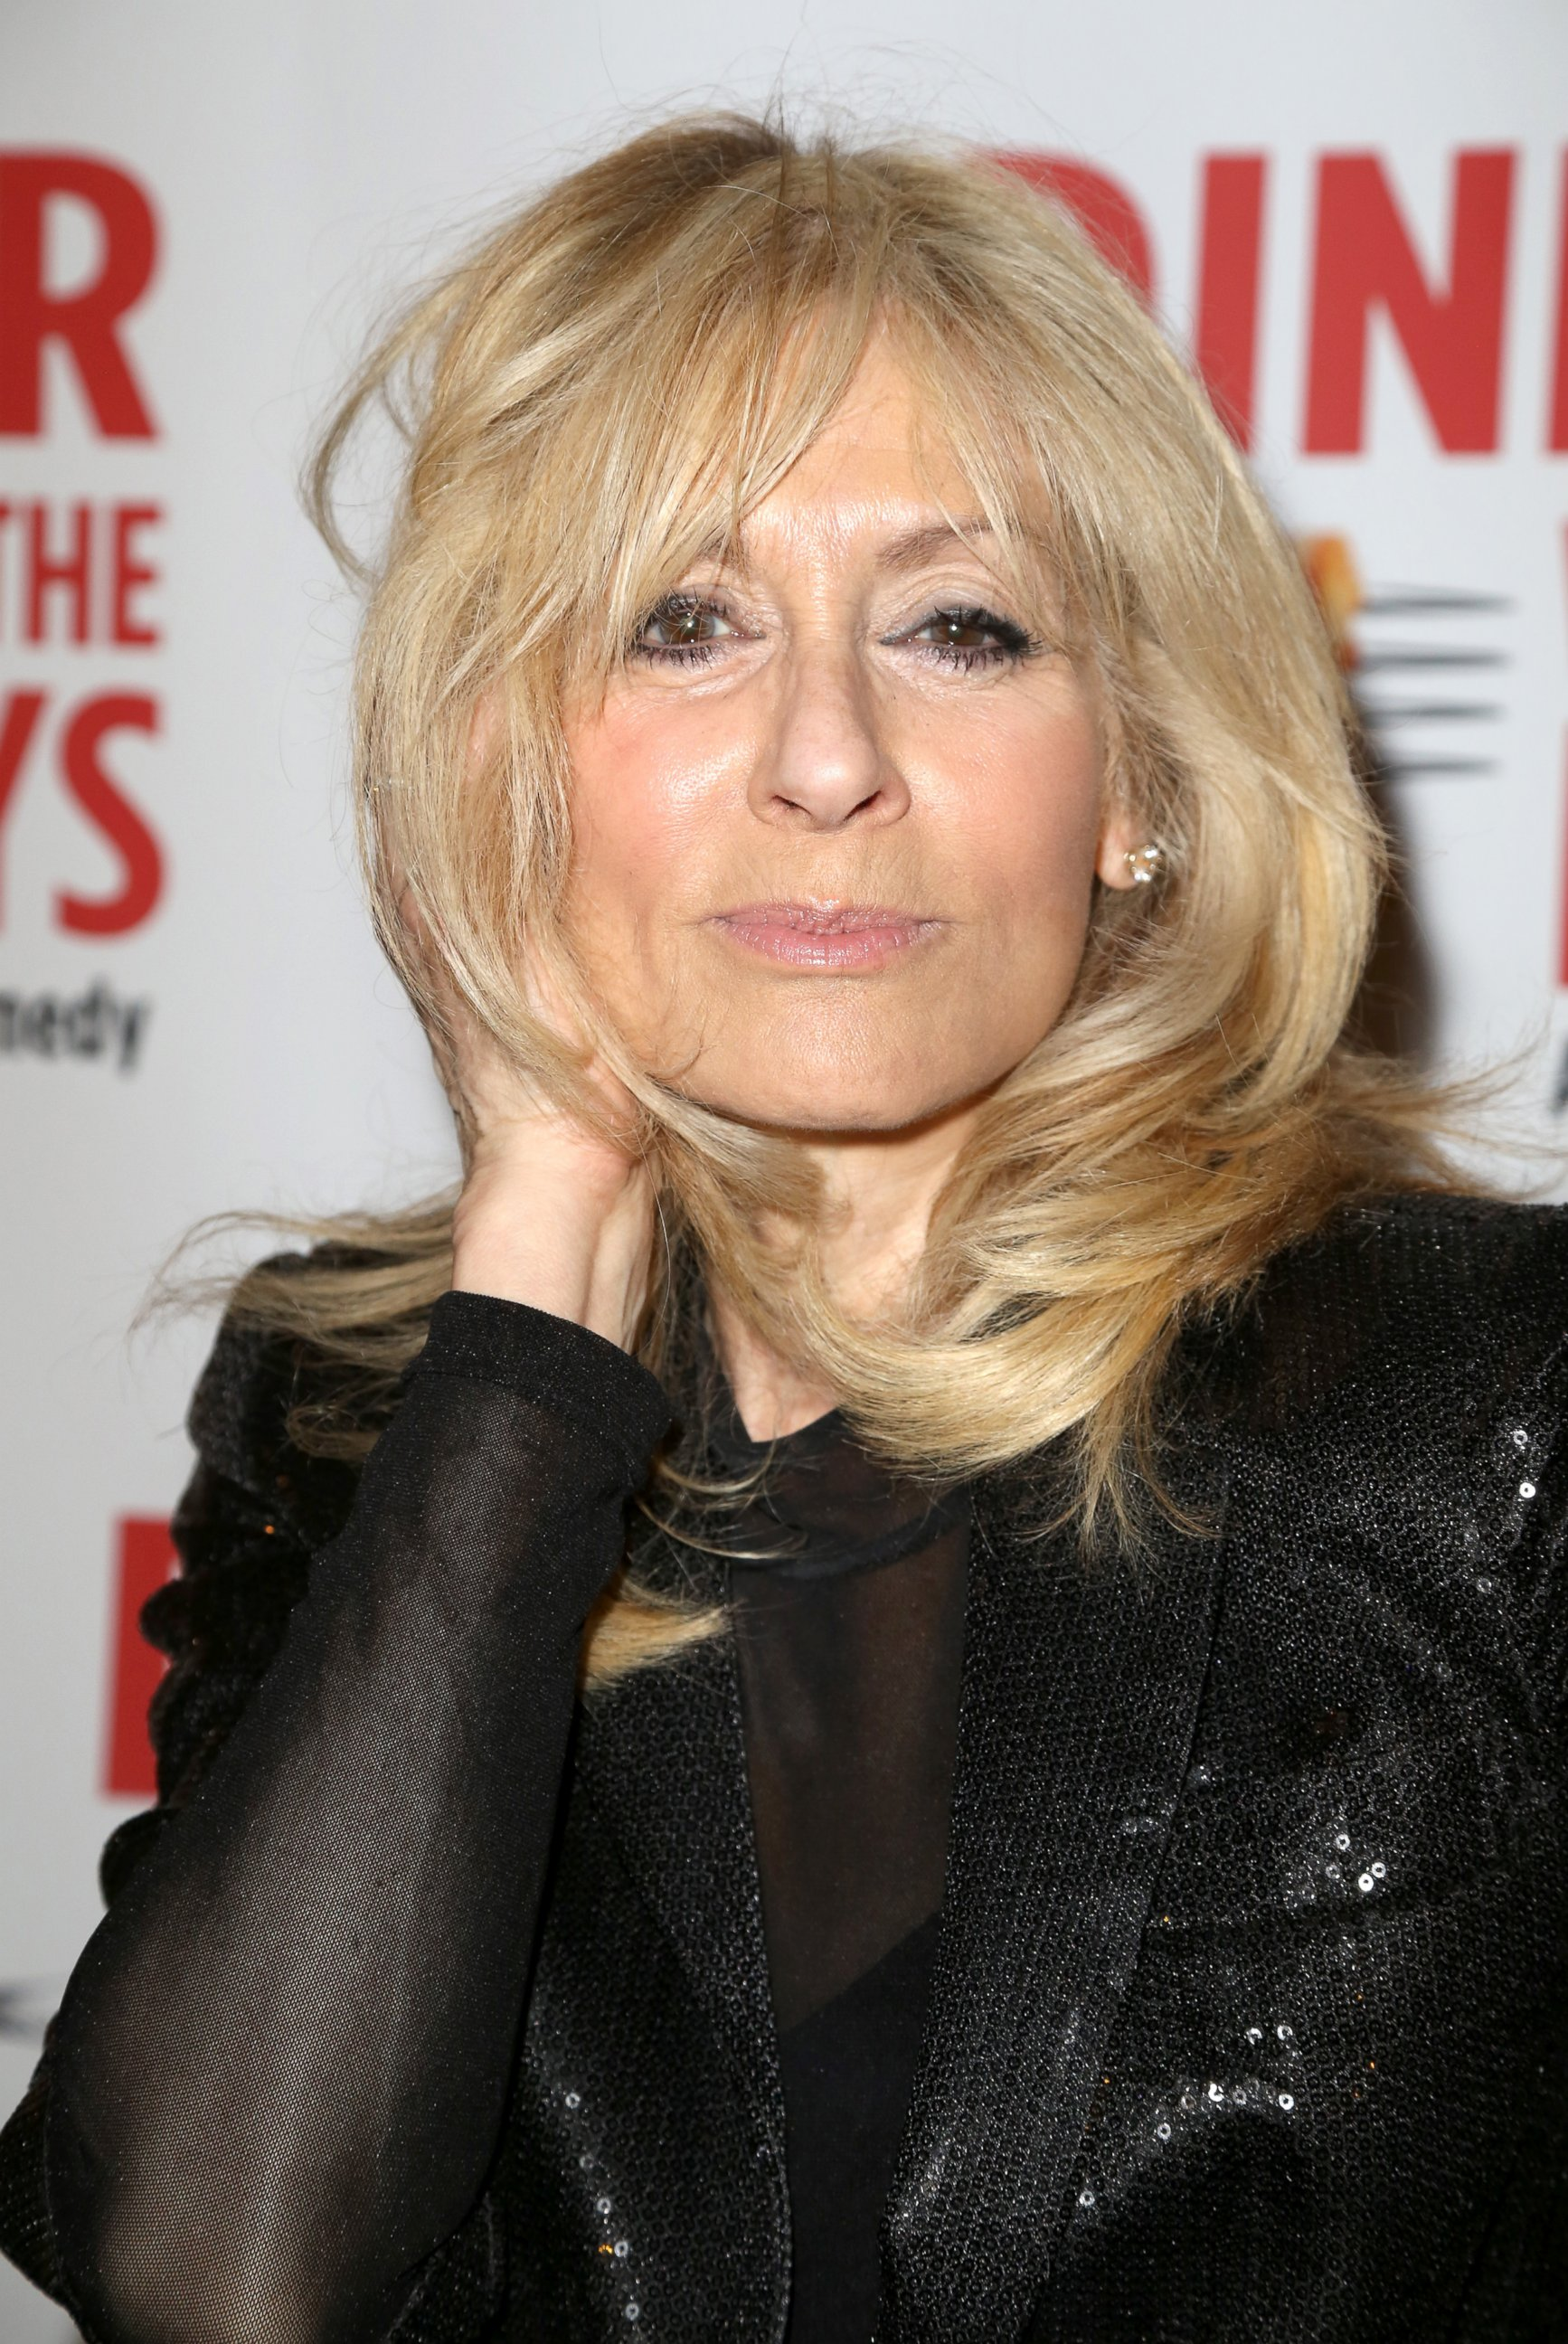 judith light agejudith light height, judith light instagram, judith light actress, judith light, judith light one life to live, judith light twitter, judith light broad city, judith light net worth, judith light cancer, judith light age, judith light husband, judith light imdb, judith light broadway, judith light feet, judith light stroke, judith light tony danza, judith light gay, judith light movies, judith light plastic surgery, judith light weight loss